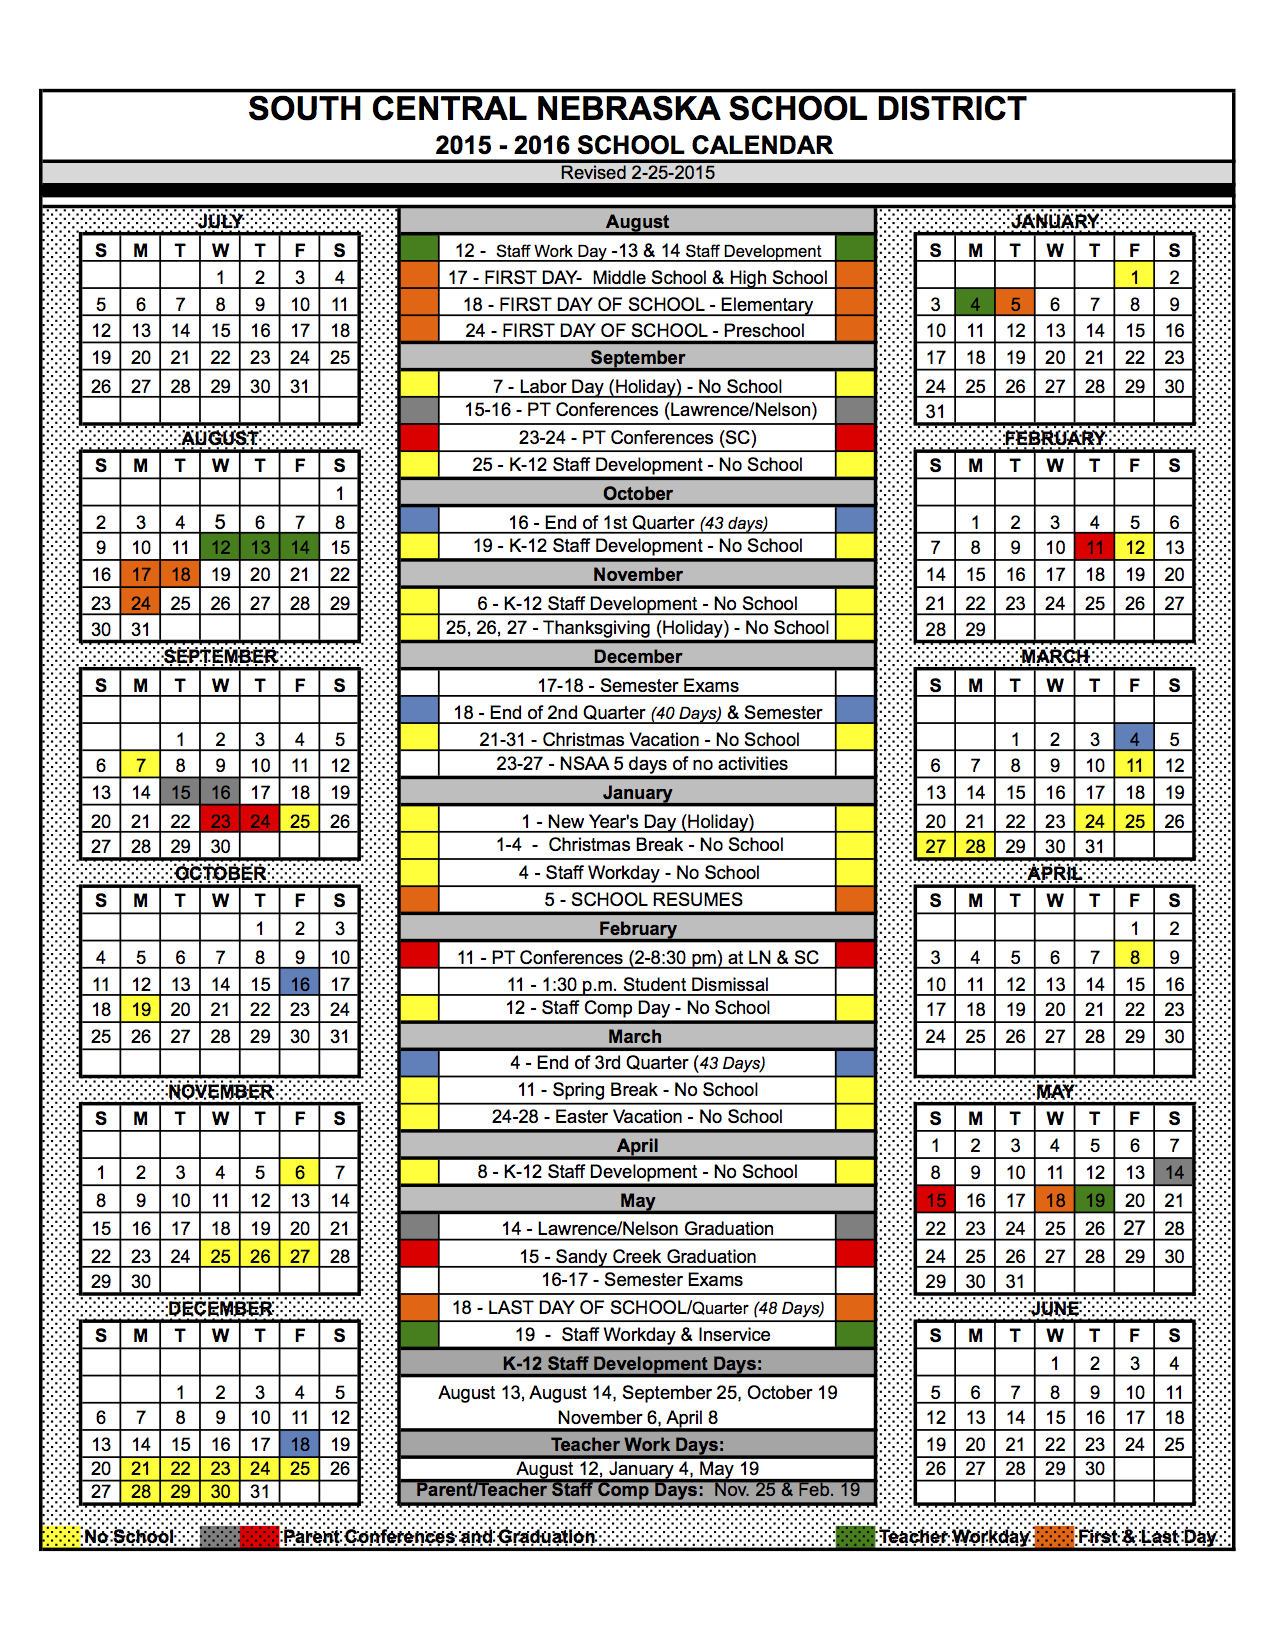 South Central USD 5 - 2015-2016 School Calendar Approved